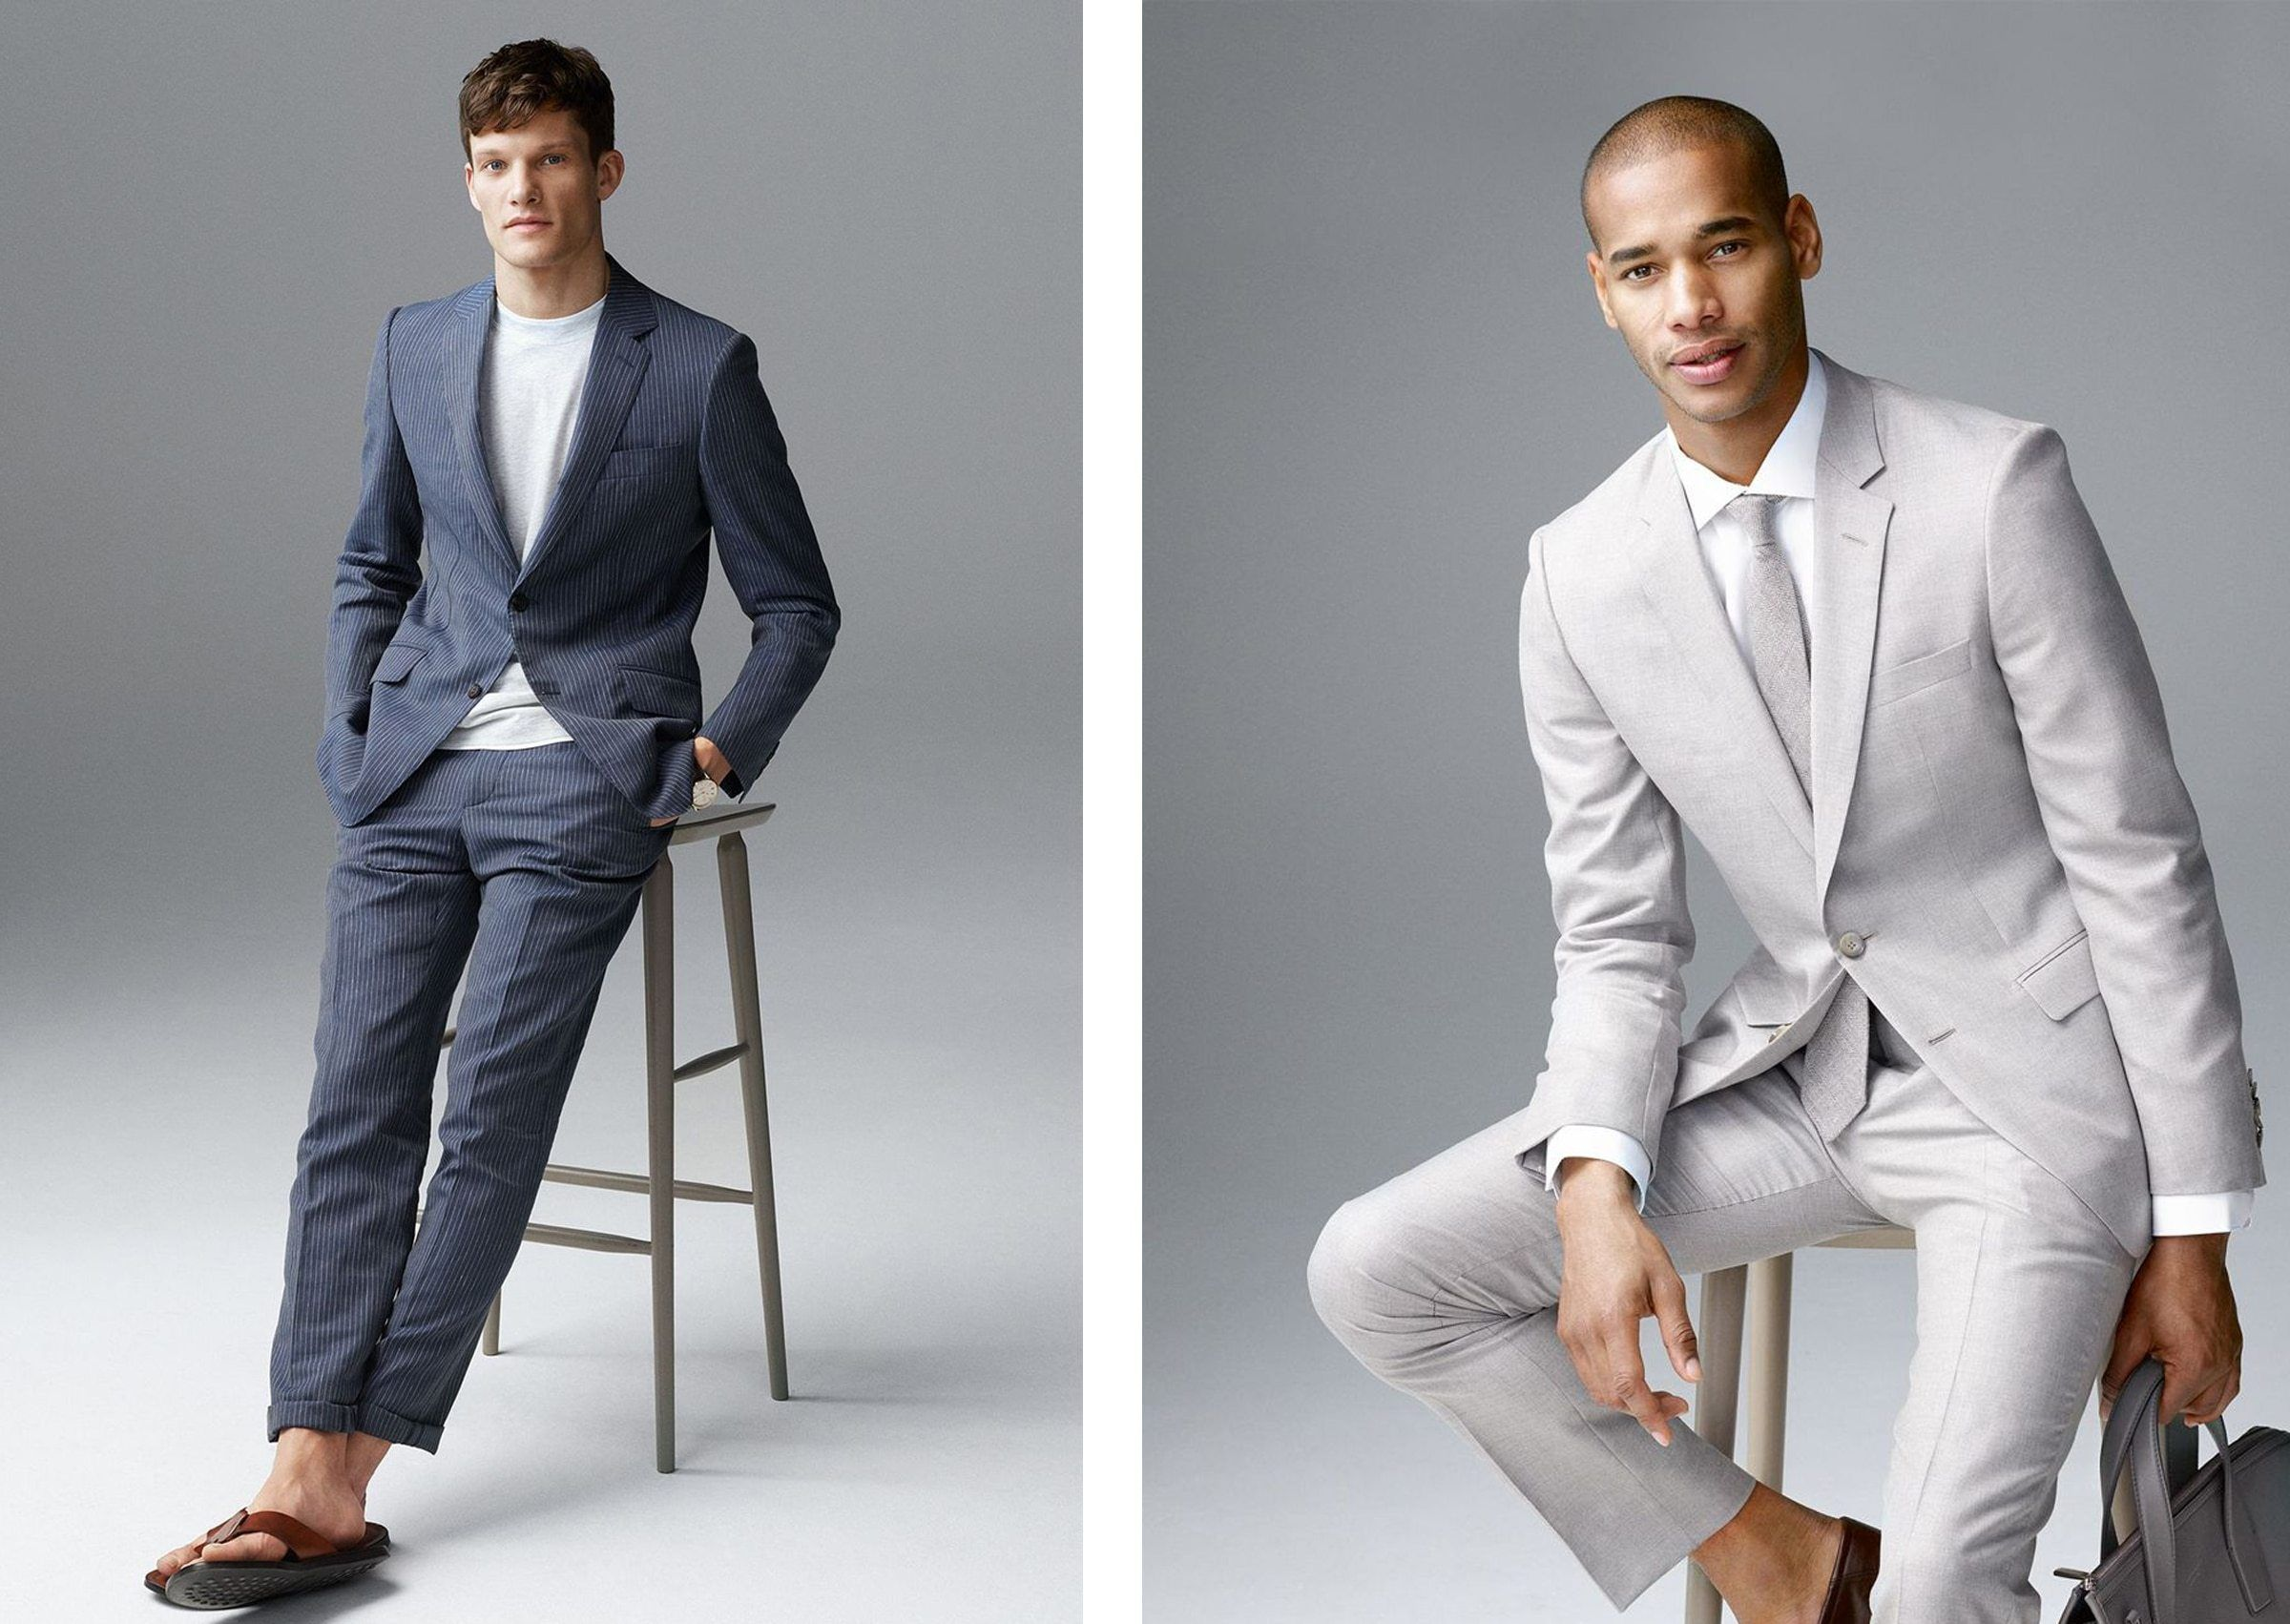 337c146abd64 Check out The Black Tux's 2019 complete guide to wedding attire for men.  Get advice on wedding dress codes, seasonal attire, wedding themes, and  more.